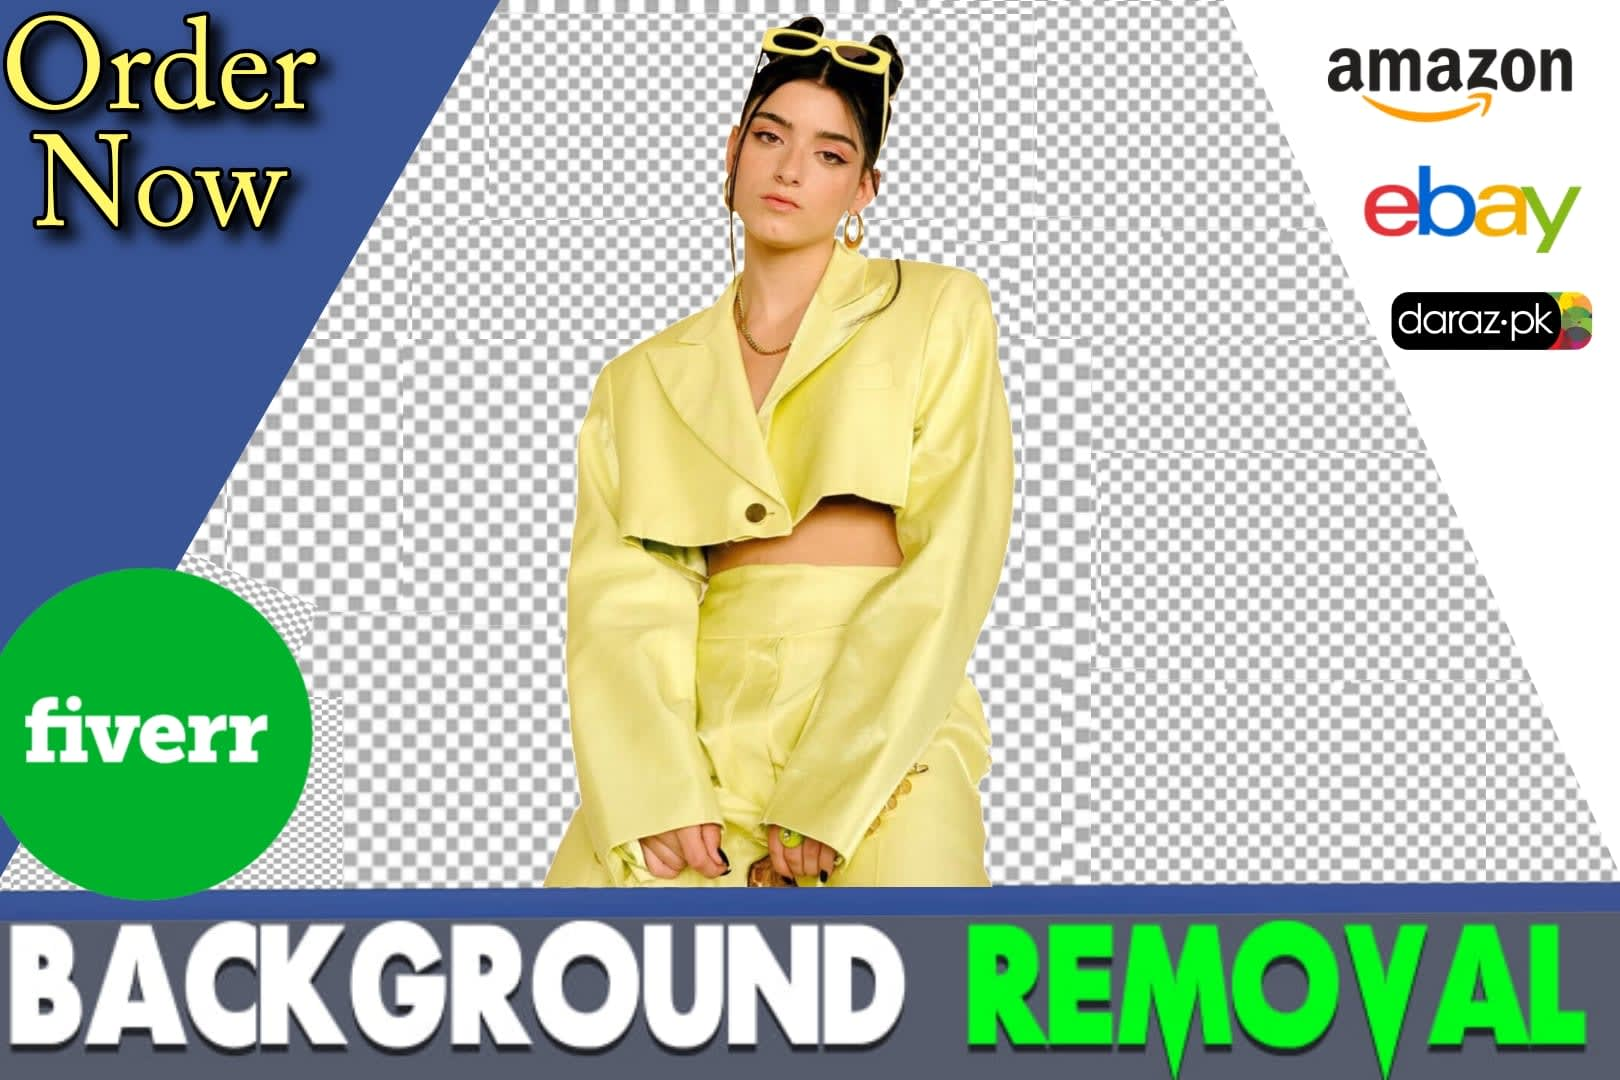 Portfolio for Image cropping and background removal